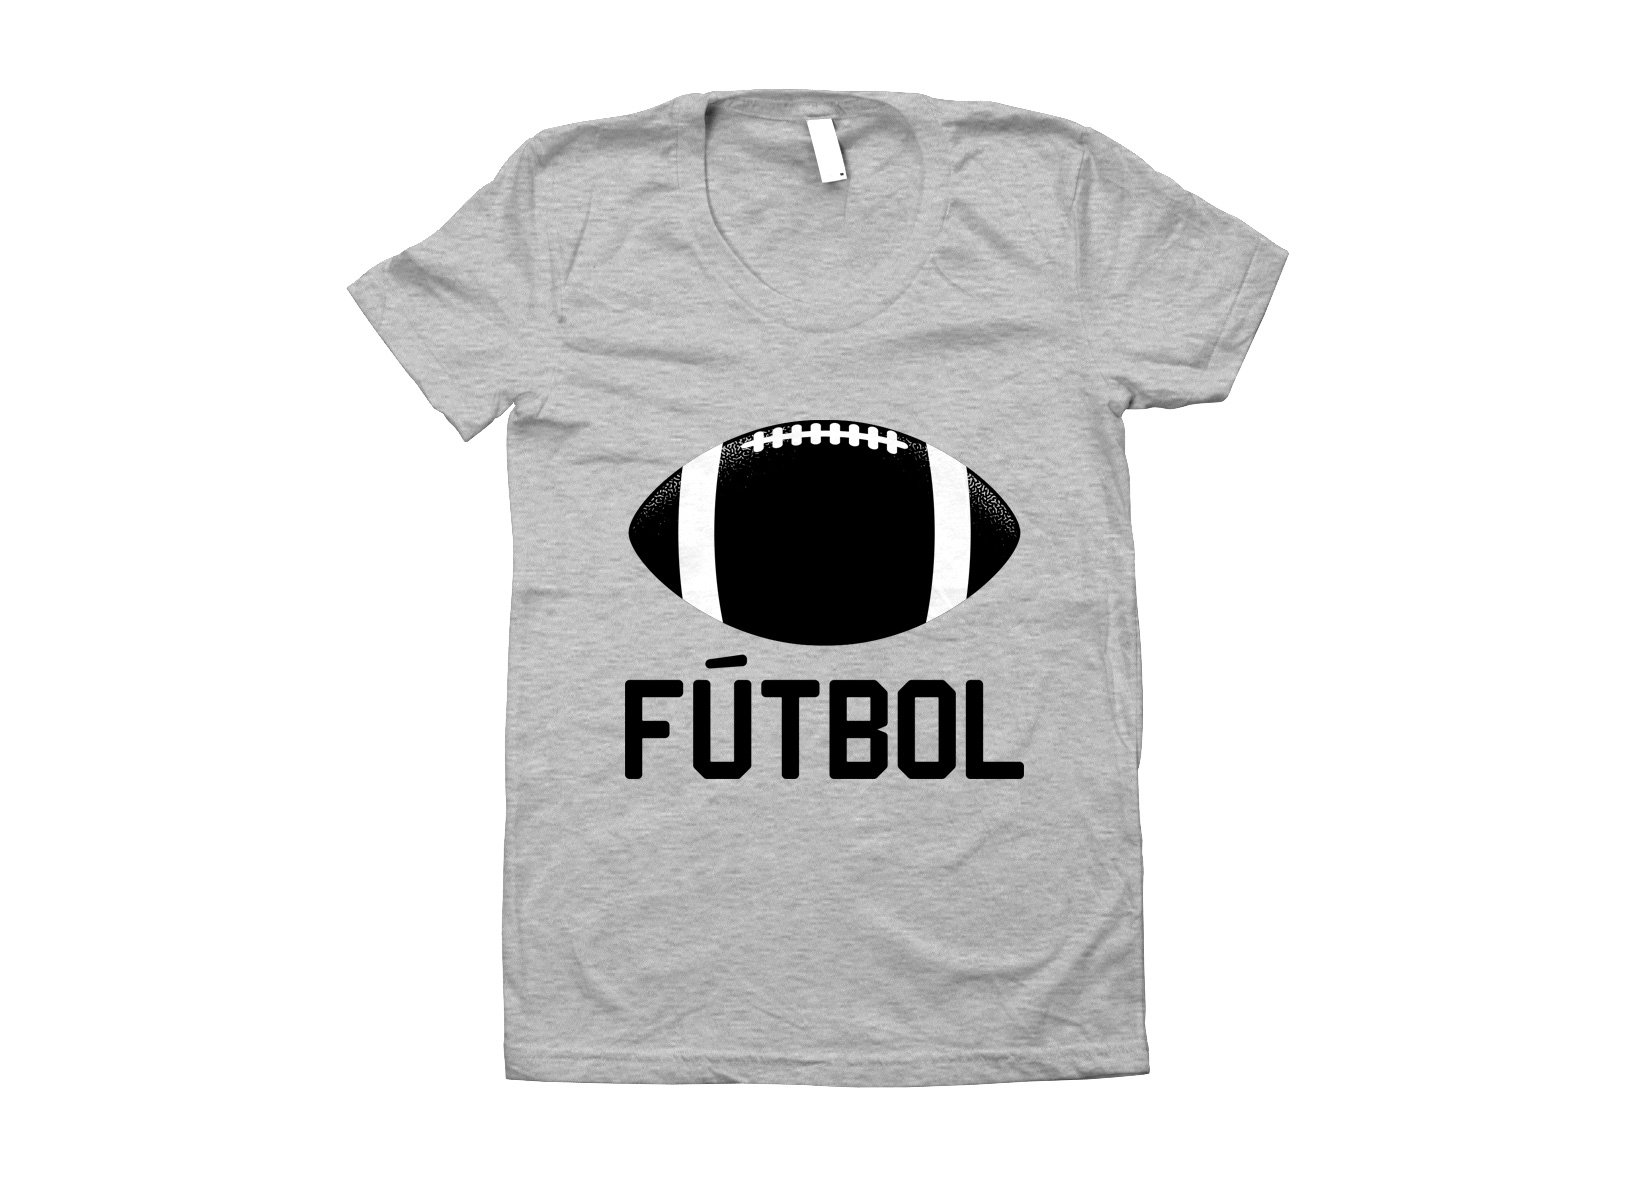 Futbol on Juniors T-Shirt